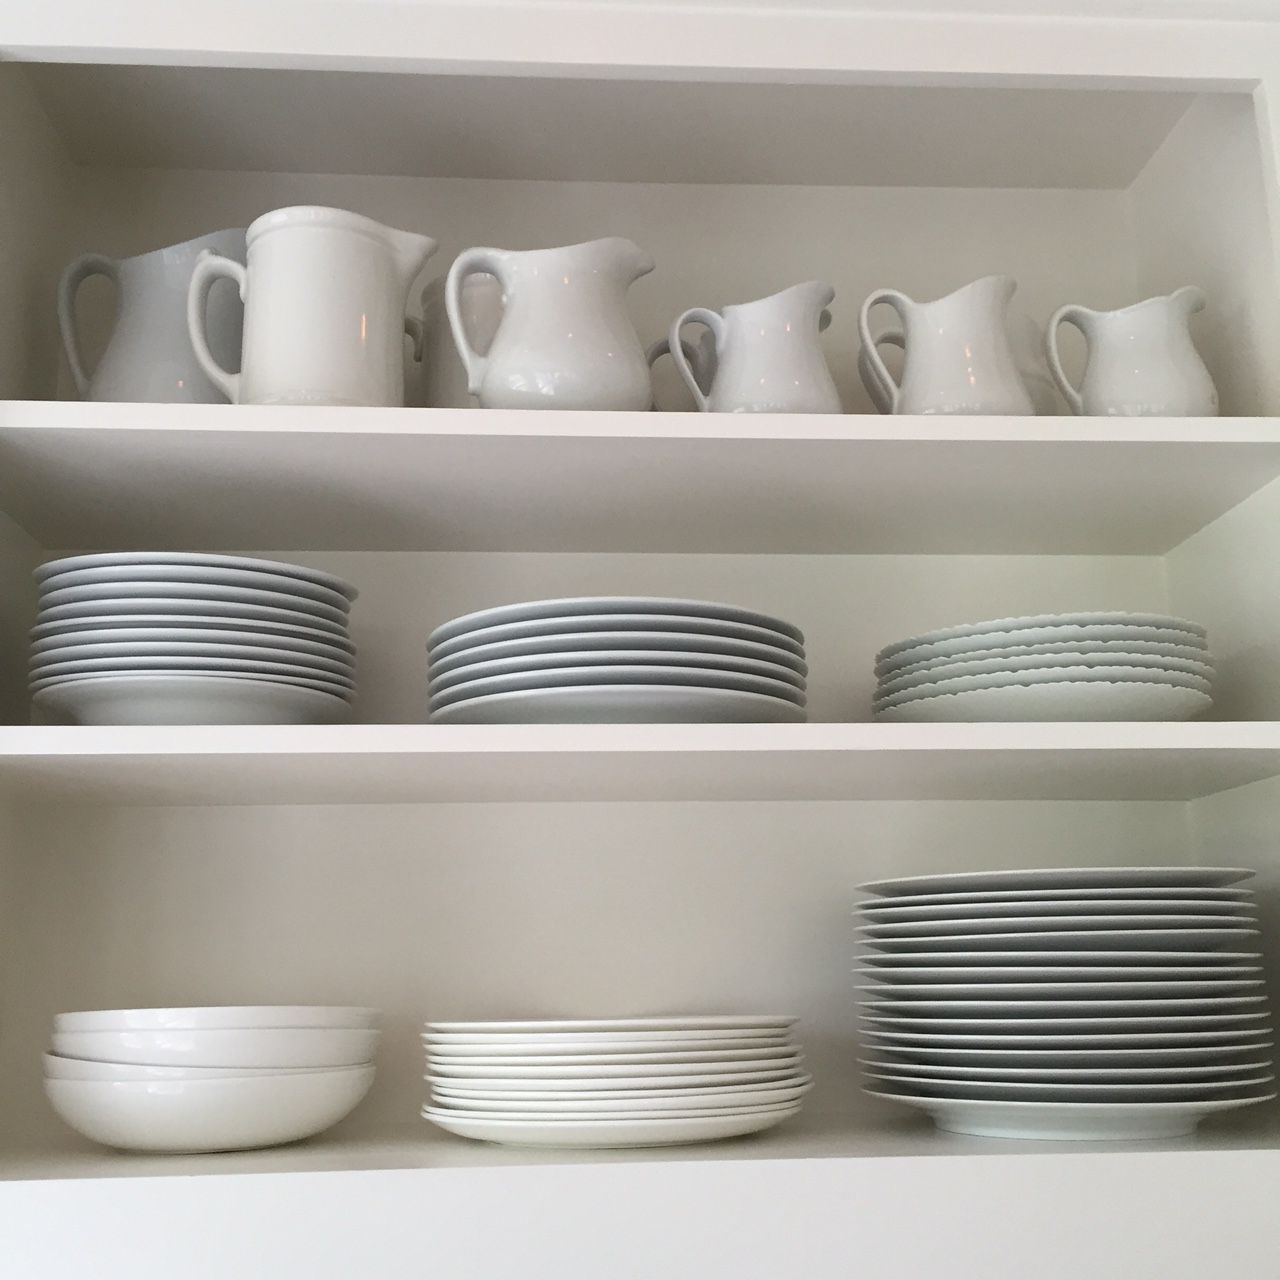 I Use Lots Of White Tableware Because It Makes The Food